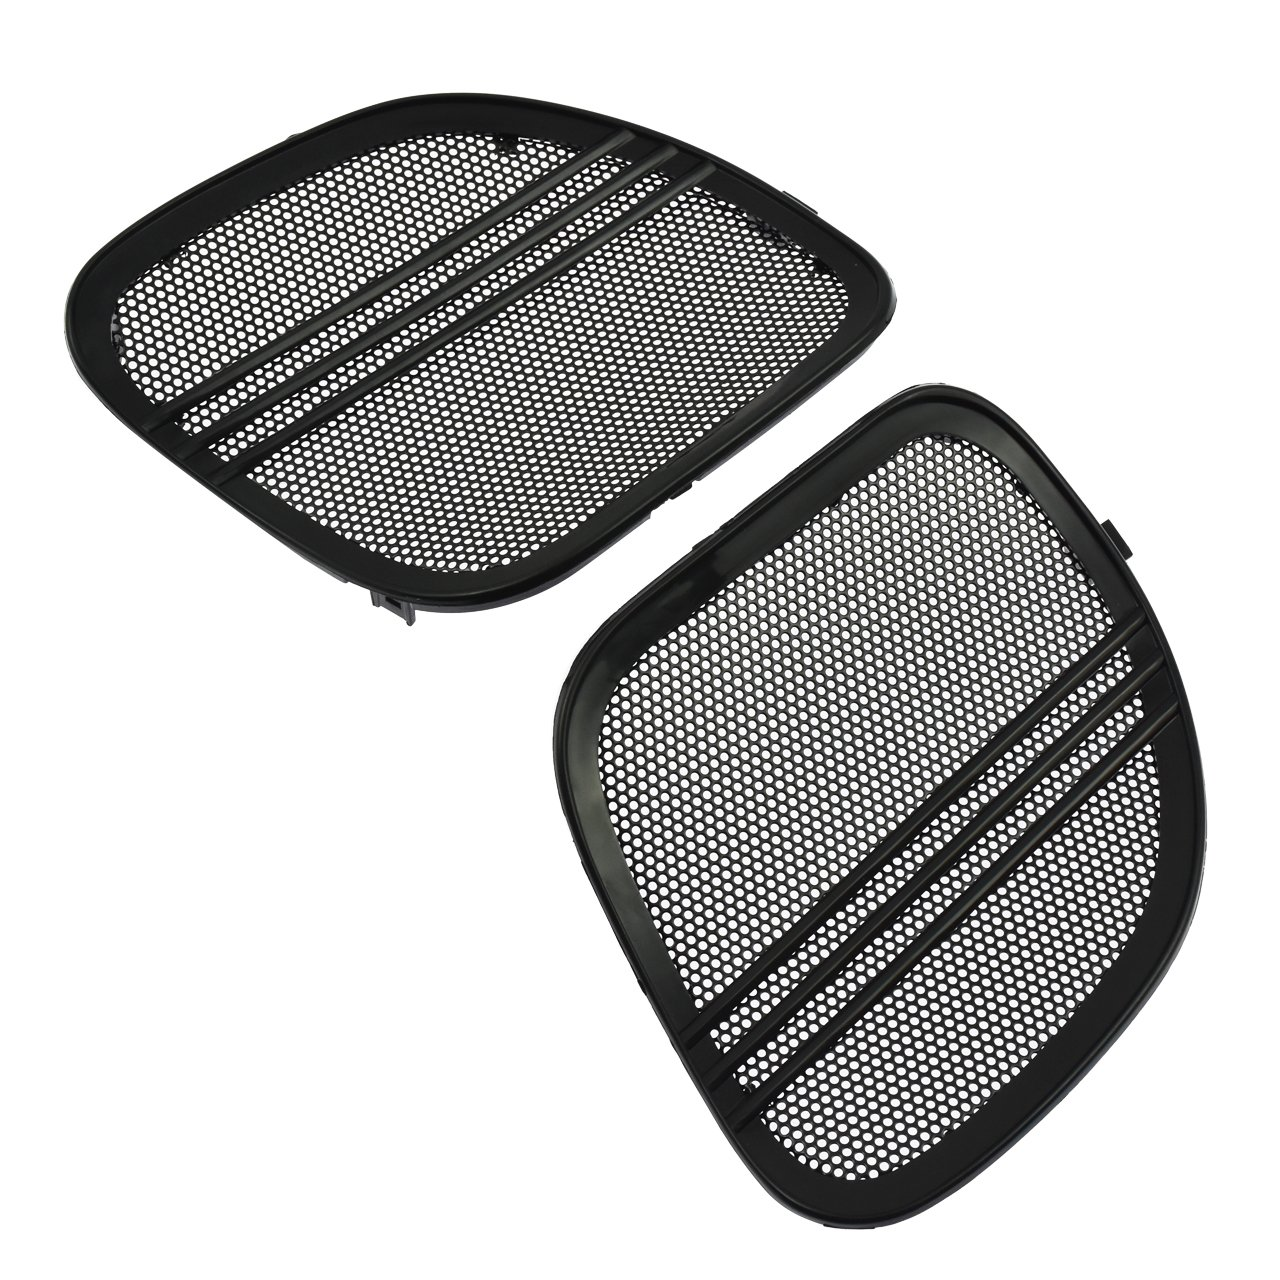 Amazon.com: rebacker moto tri-line altavoz parrillas ...